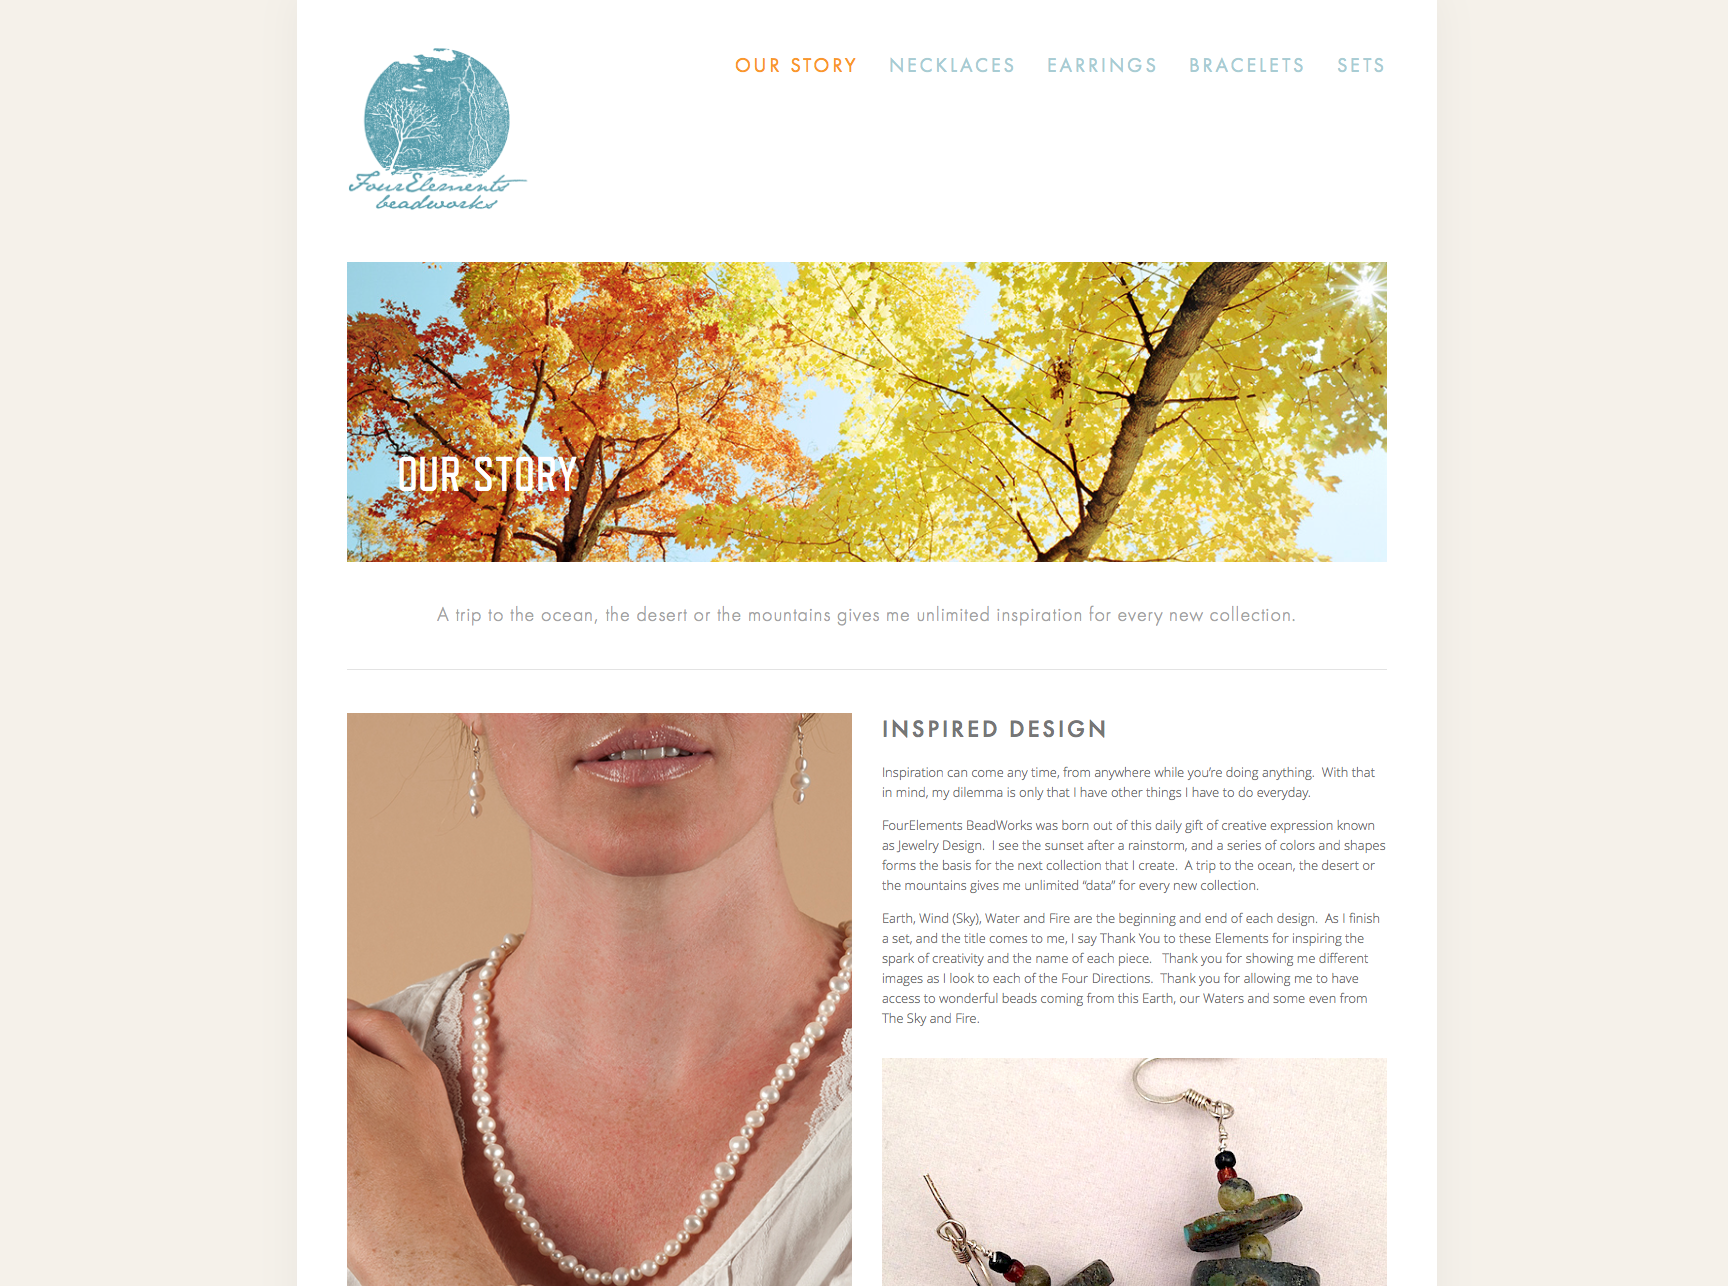 Four Elements BeadWorks needed an eCommerce site with a focus on visibility and ease of use for both the user and the client. This site offers the user an opportunity to not only learn about the jewelry as well as the artist,but to purchase and stay up to date via social media and an email sign up. The logo was developed in house withbusiness cards to completethe identity package.